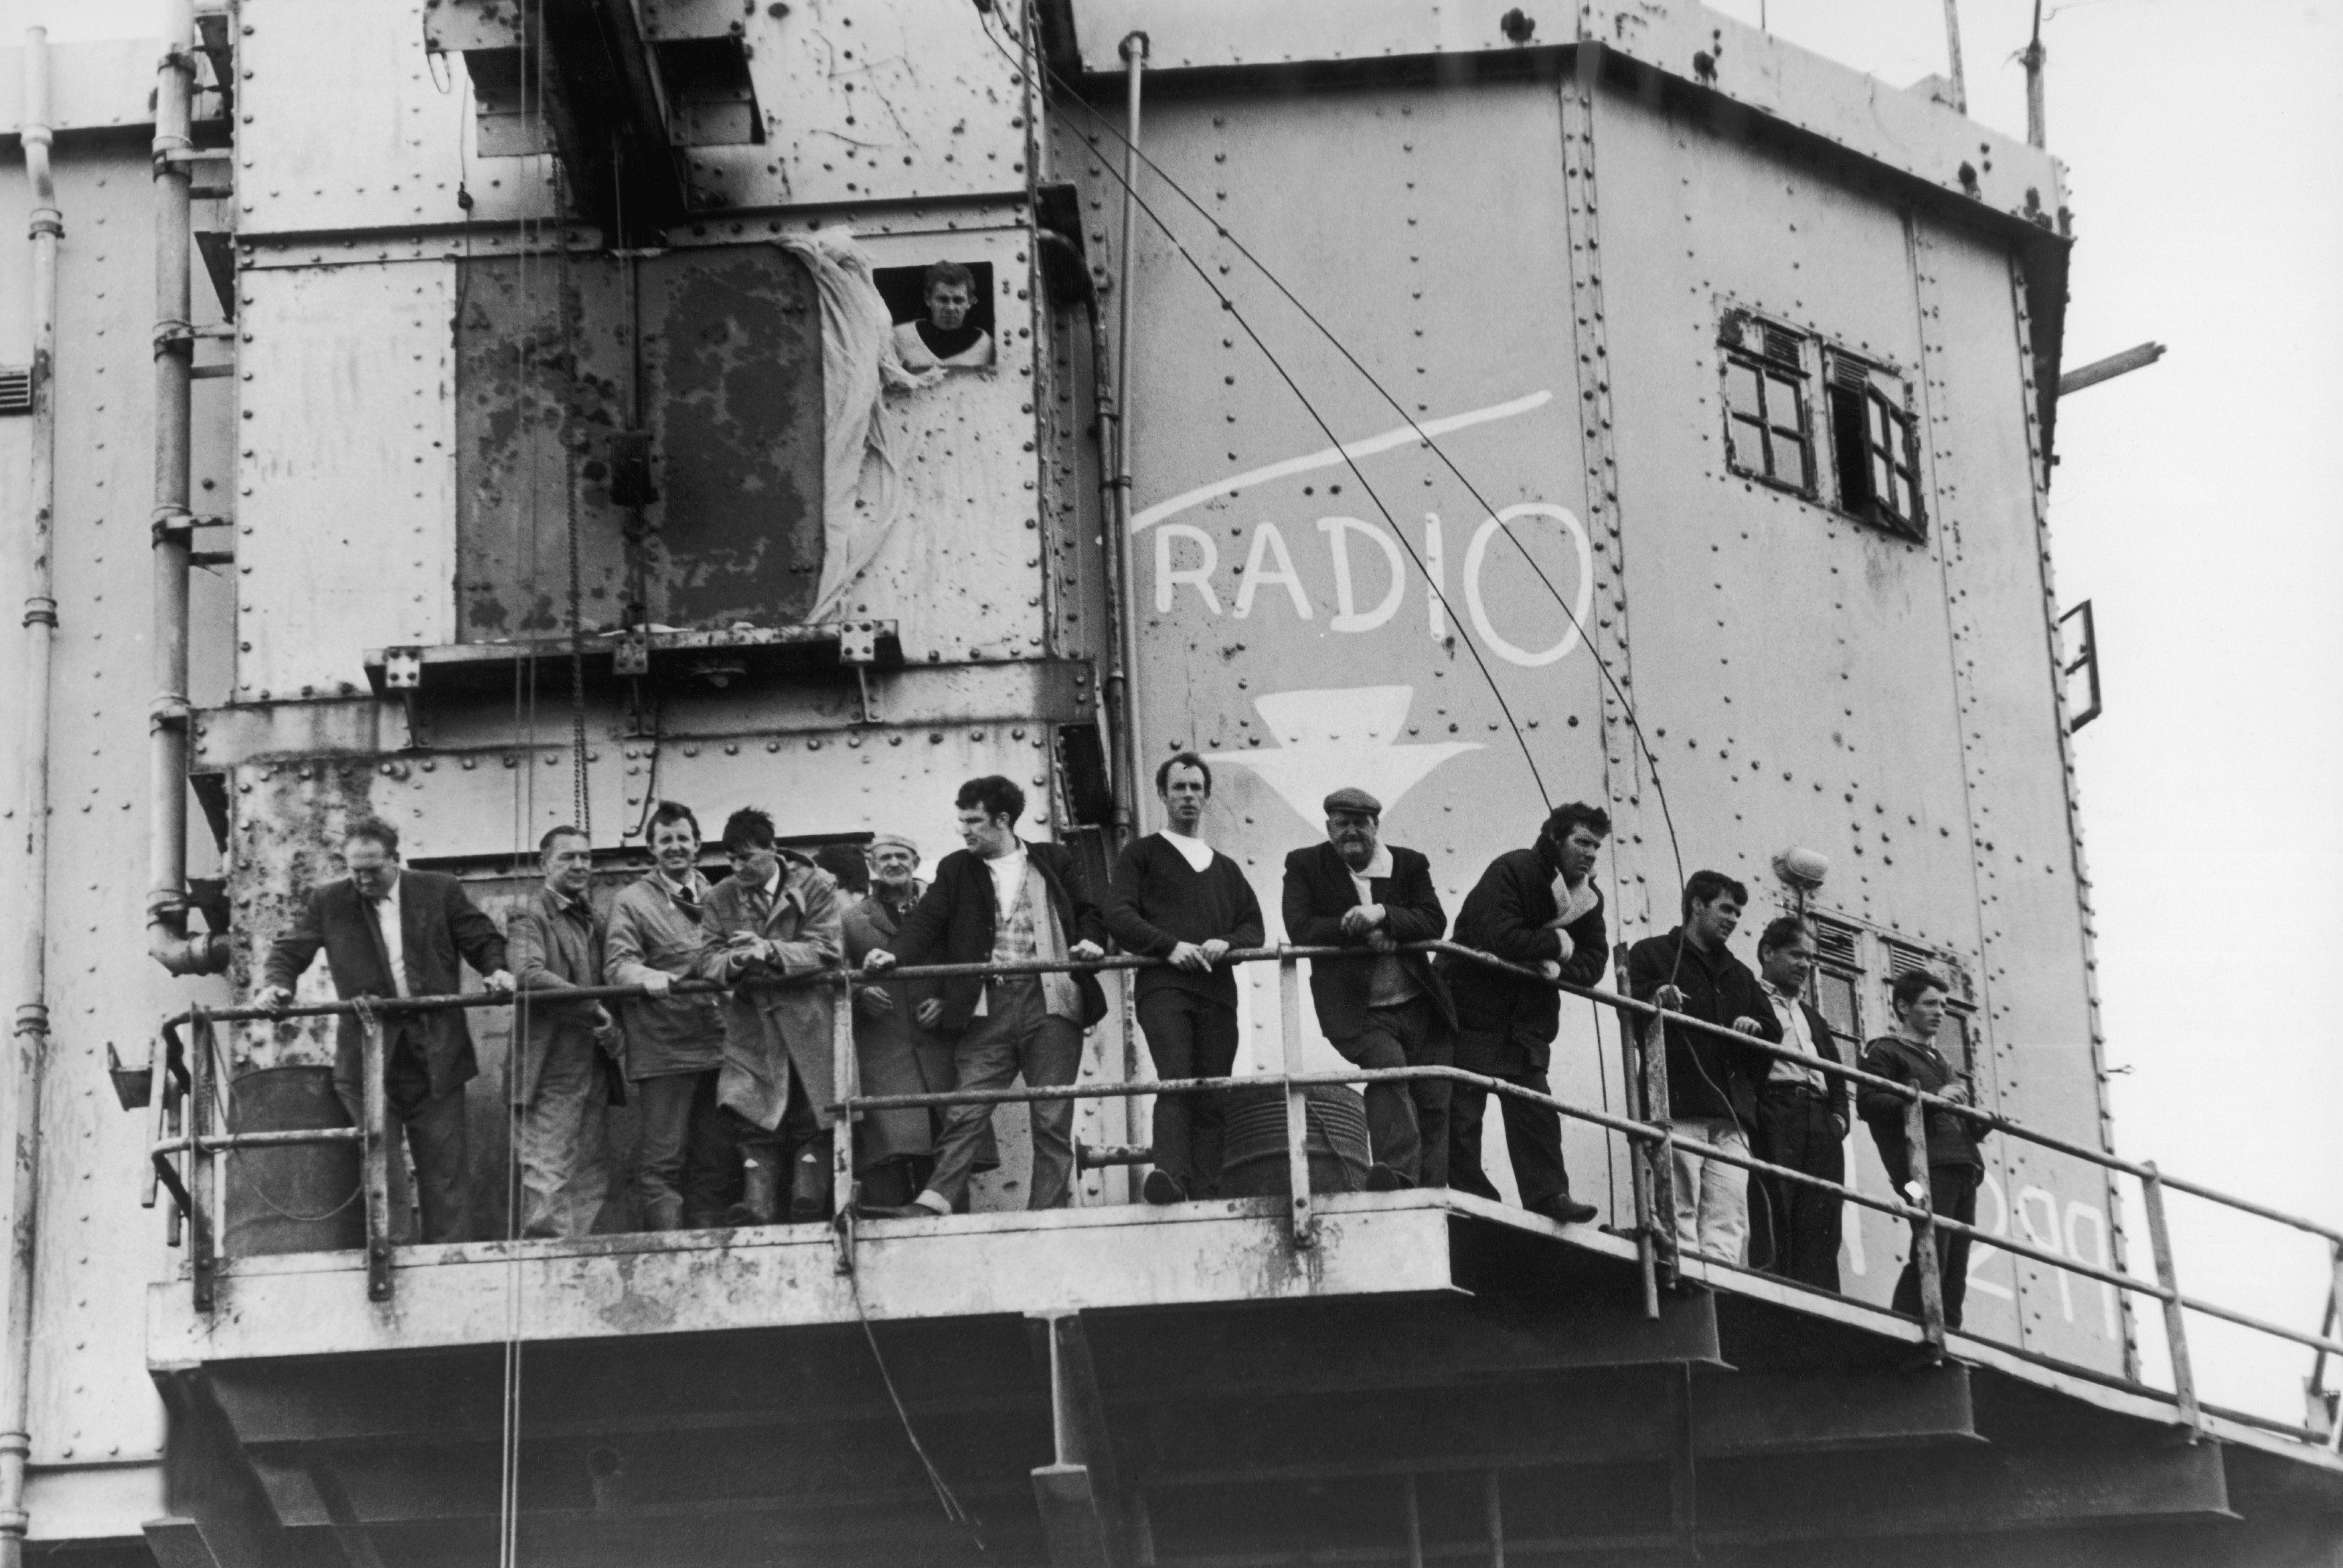 Men line the rails around Radio City, on an abandoned naval fort in the Thames Estuary. In June 1966, Radio City was at the centre of a murder enquiry that would lead to the closure of Britain's pirate radio stations. (Photo by Keystone-France/Gamma-Keystone via Getty Images)